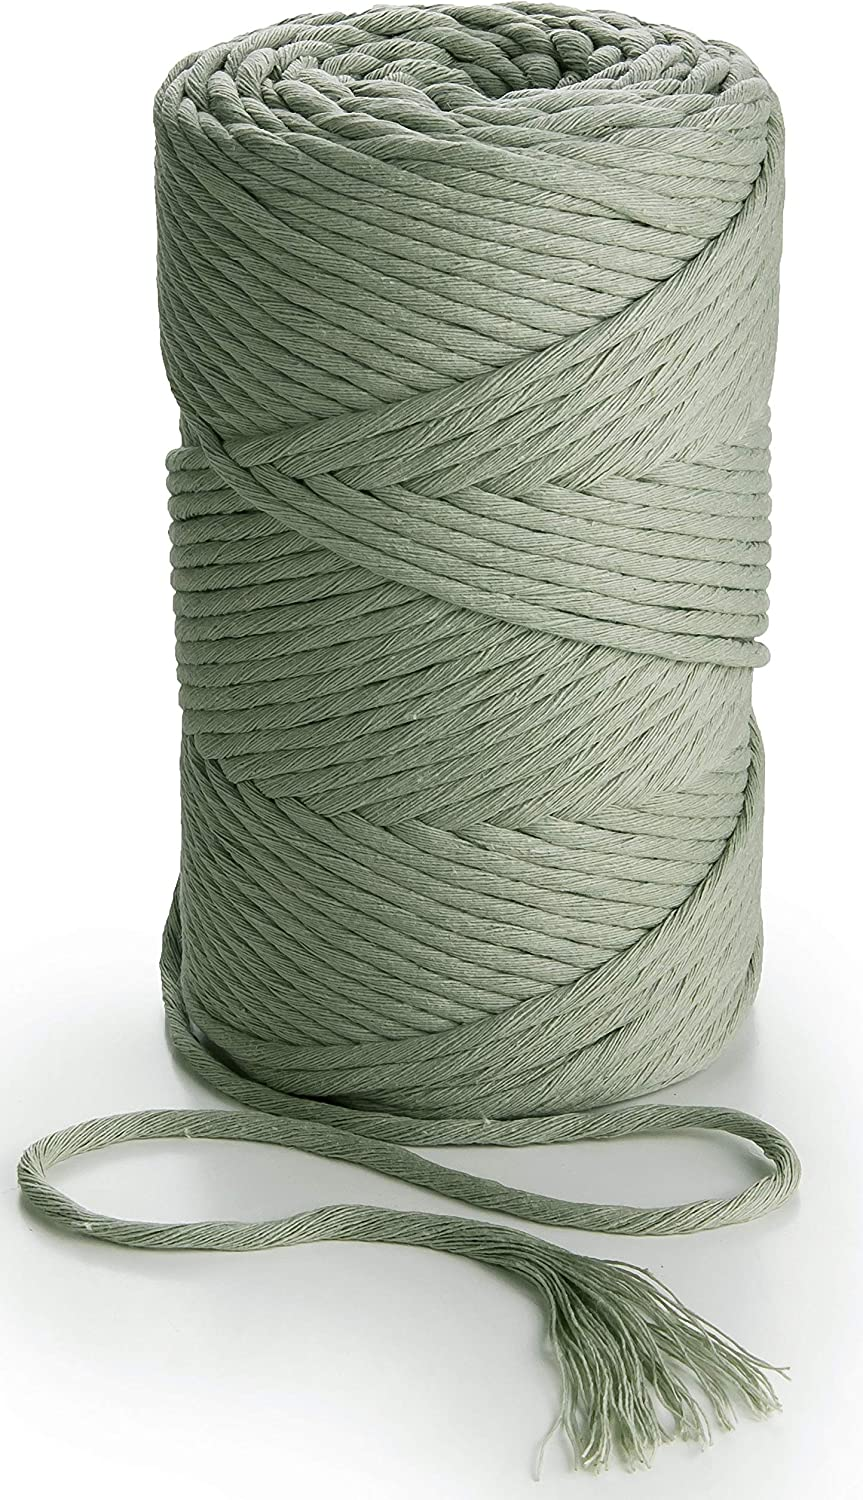 MB Cordas Sage Green Macrame Gifts Rope 153 Soft Twisted 3mm Cotton Yd Max 49% OFF